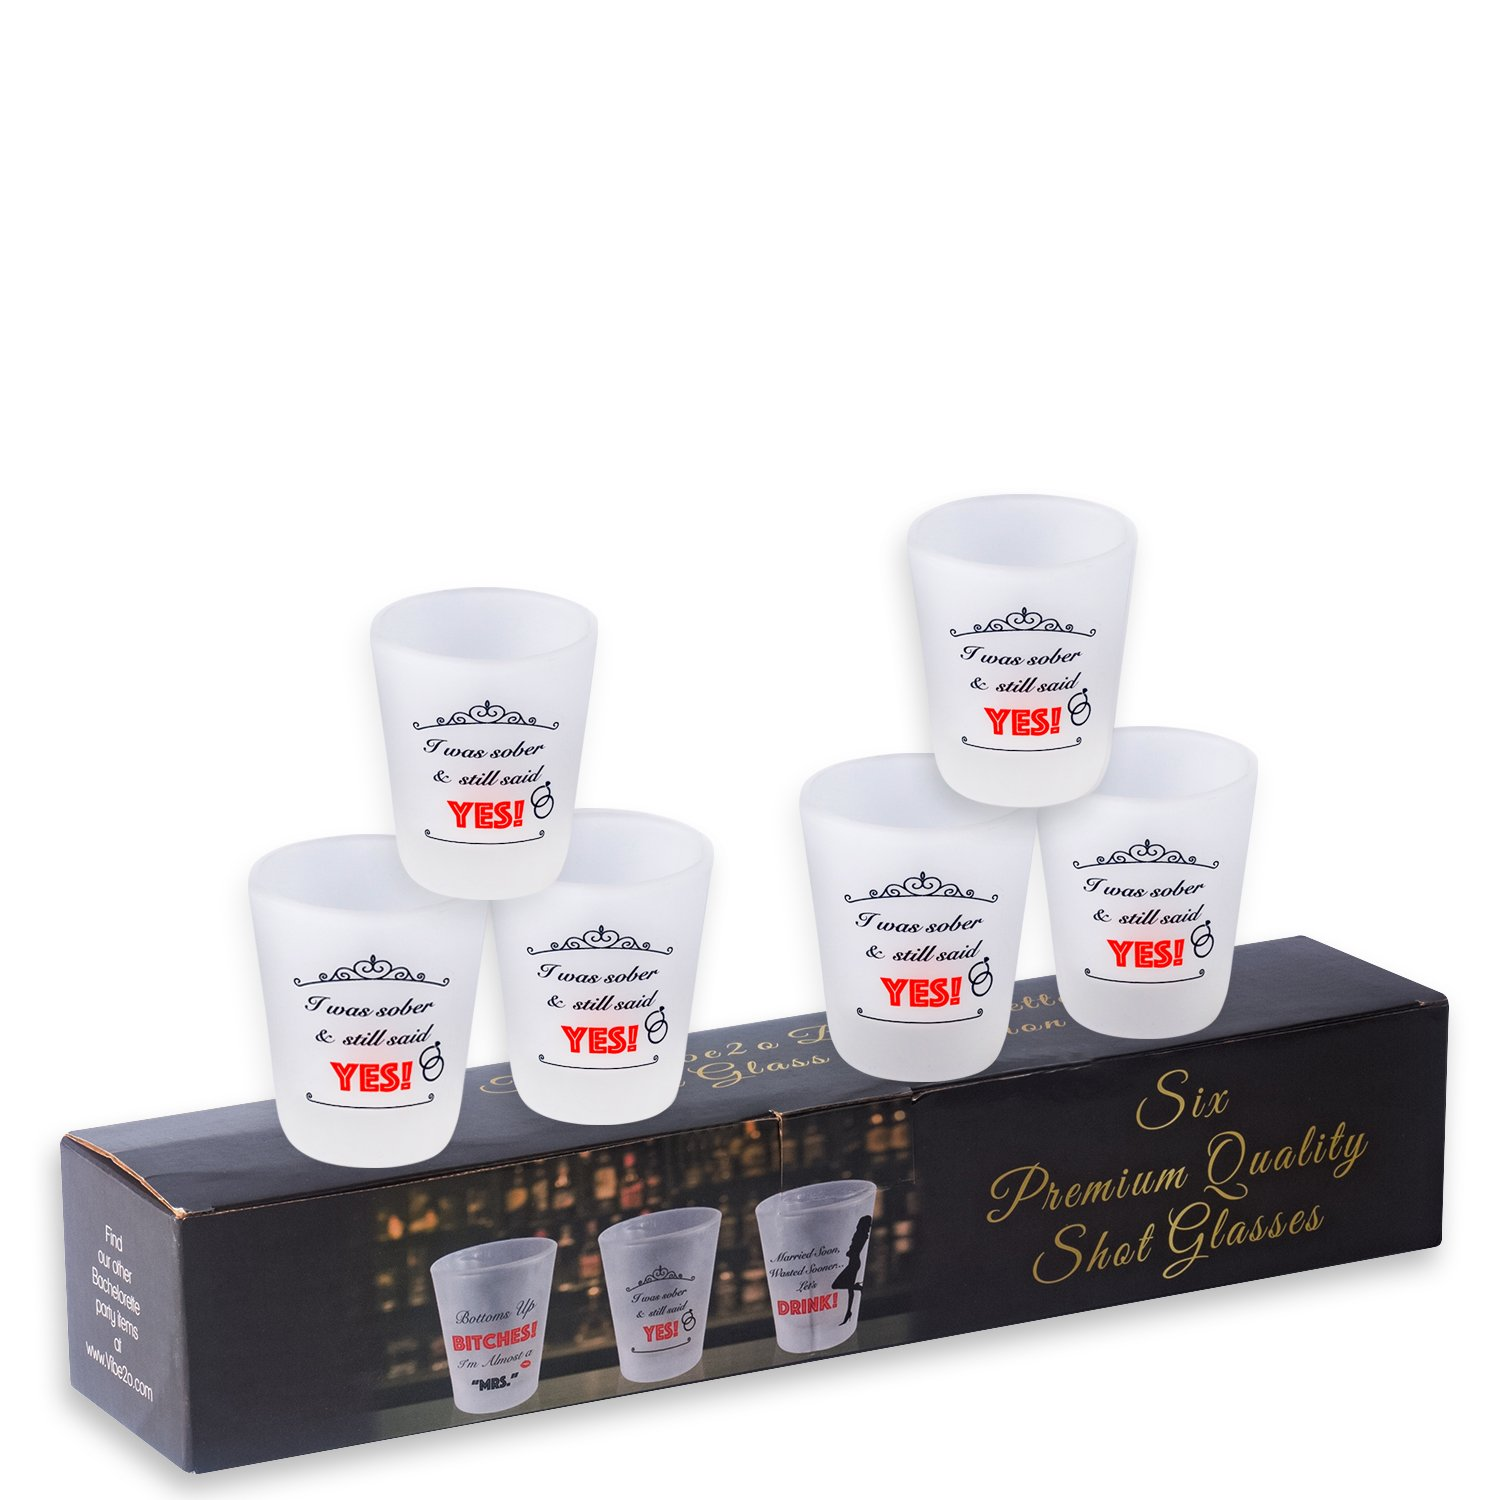 Bachelorette Party Favor Shot Glass 6 pack (I Was Sober)